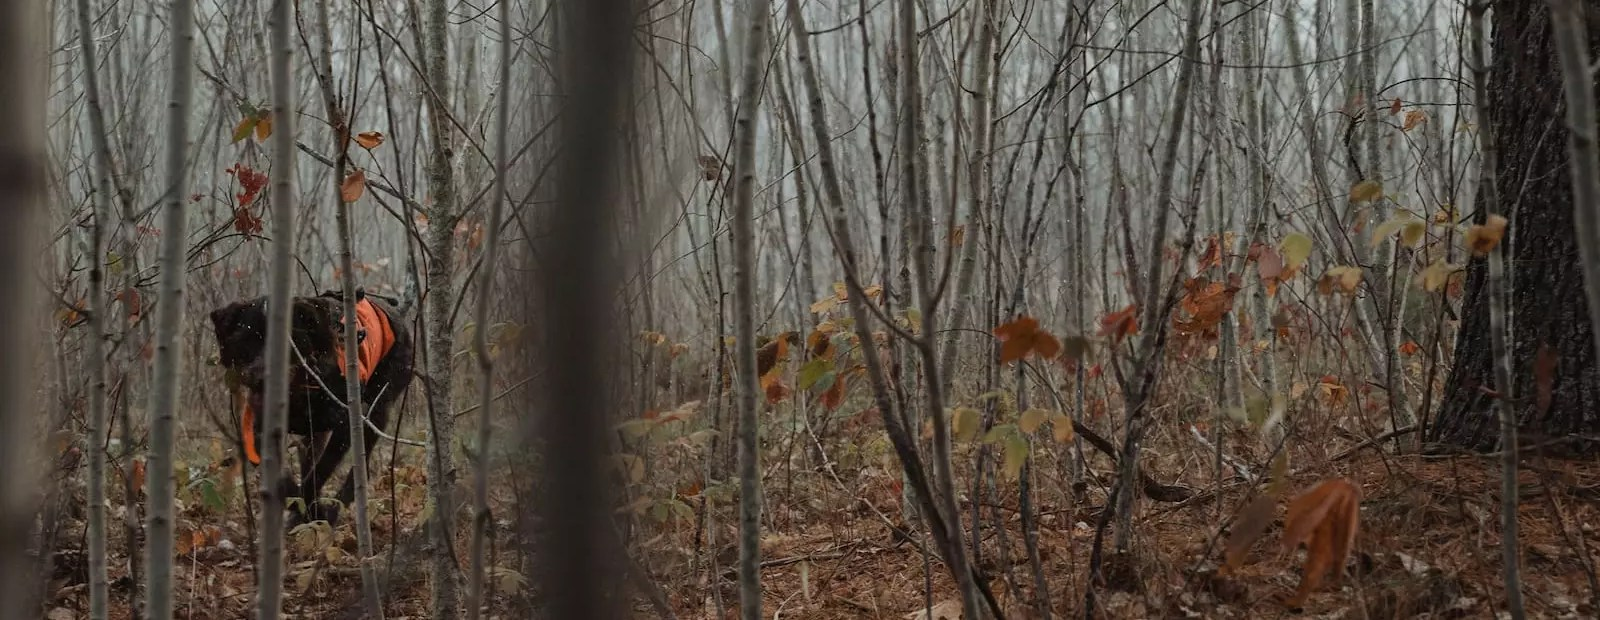 A hunting dog pursues grouse in wet, snowy woods